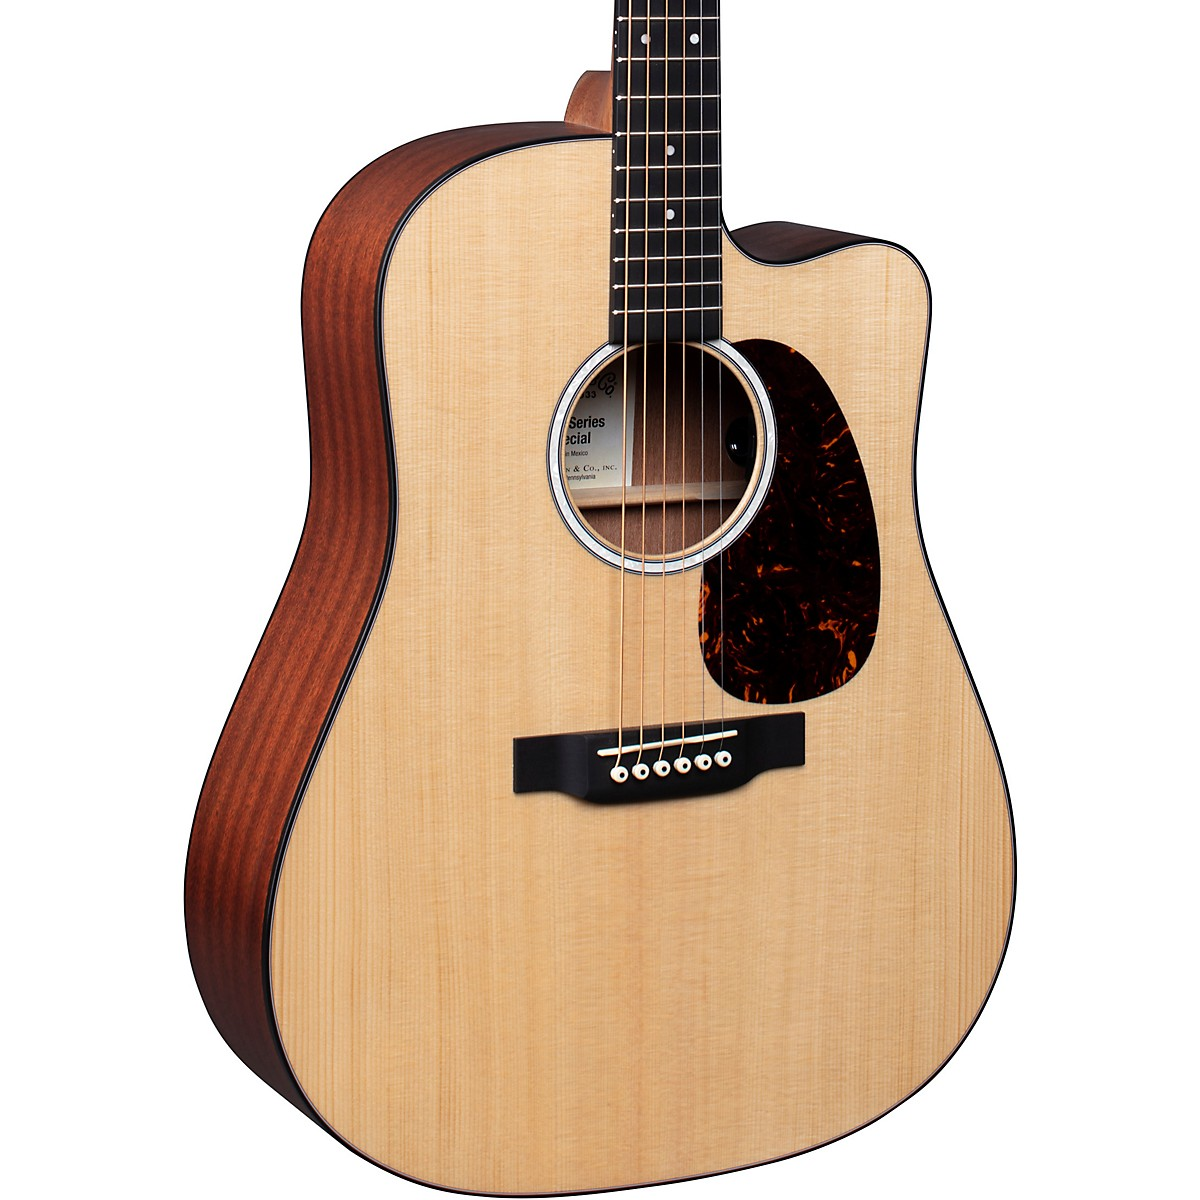 Martin Special Dreadnought Cutaway 11E Road Series Style Acoustic-Electric Guitar Natural